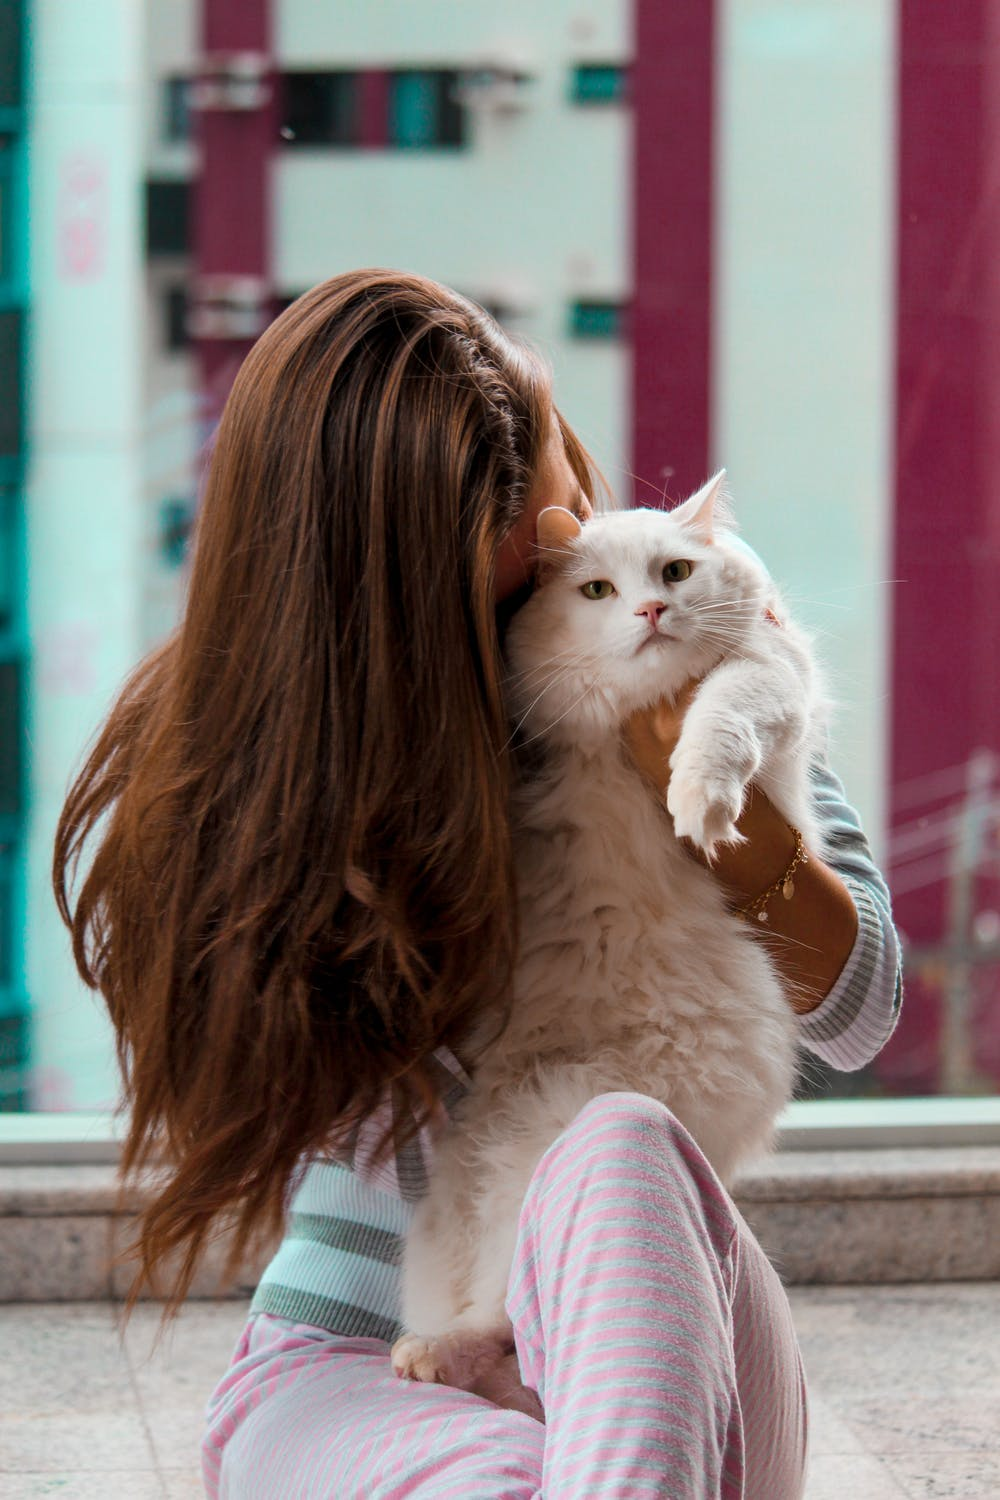 Woman carrying a cat. | Photo: Pexels